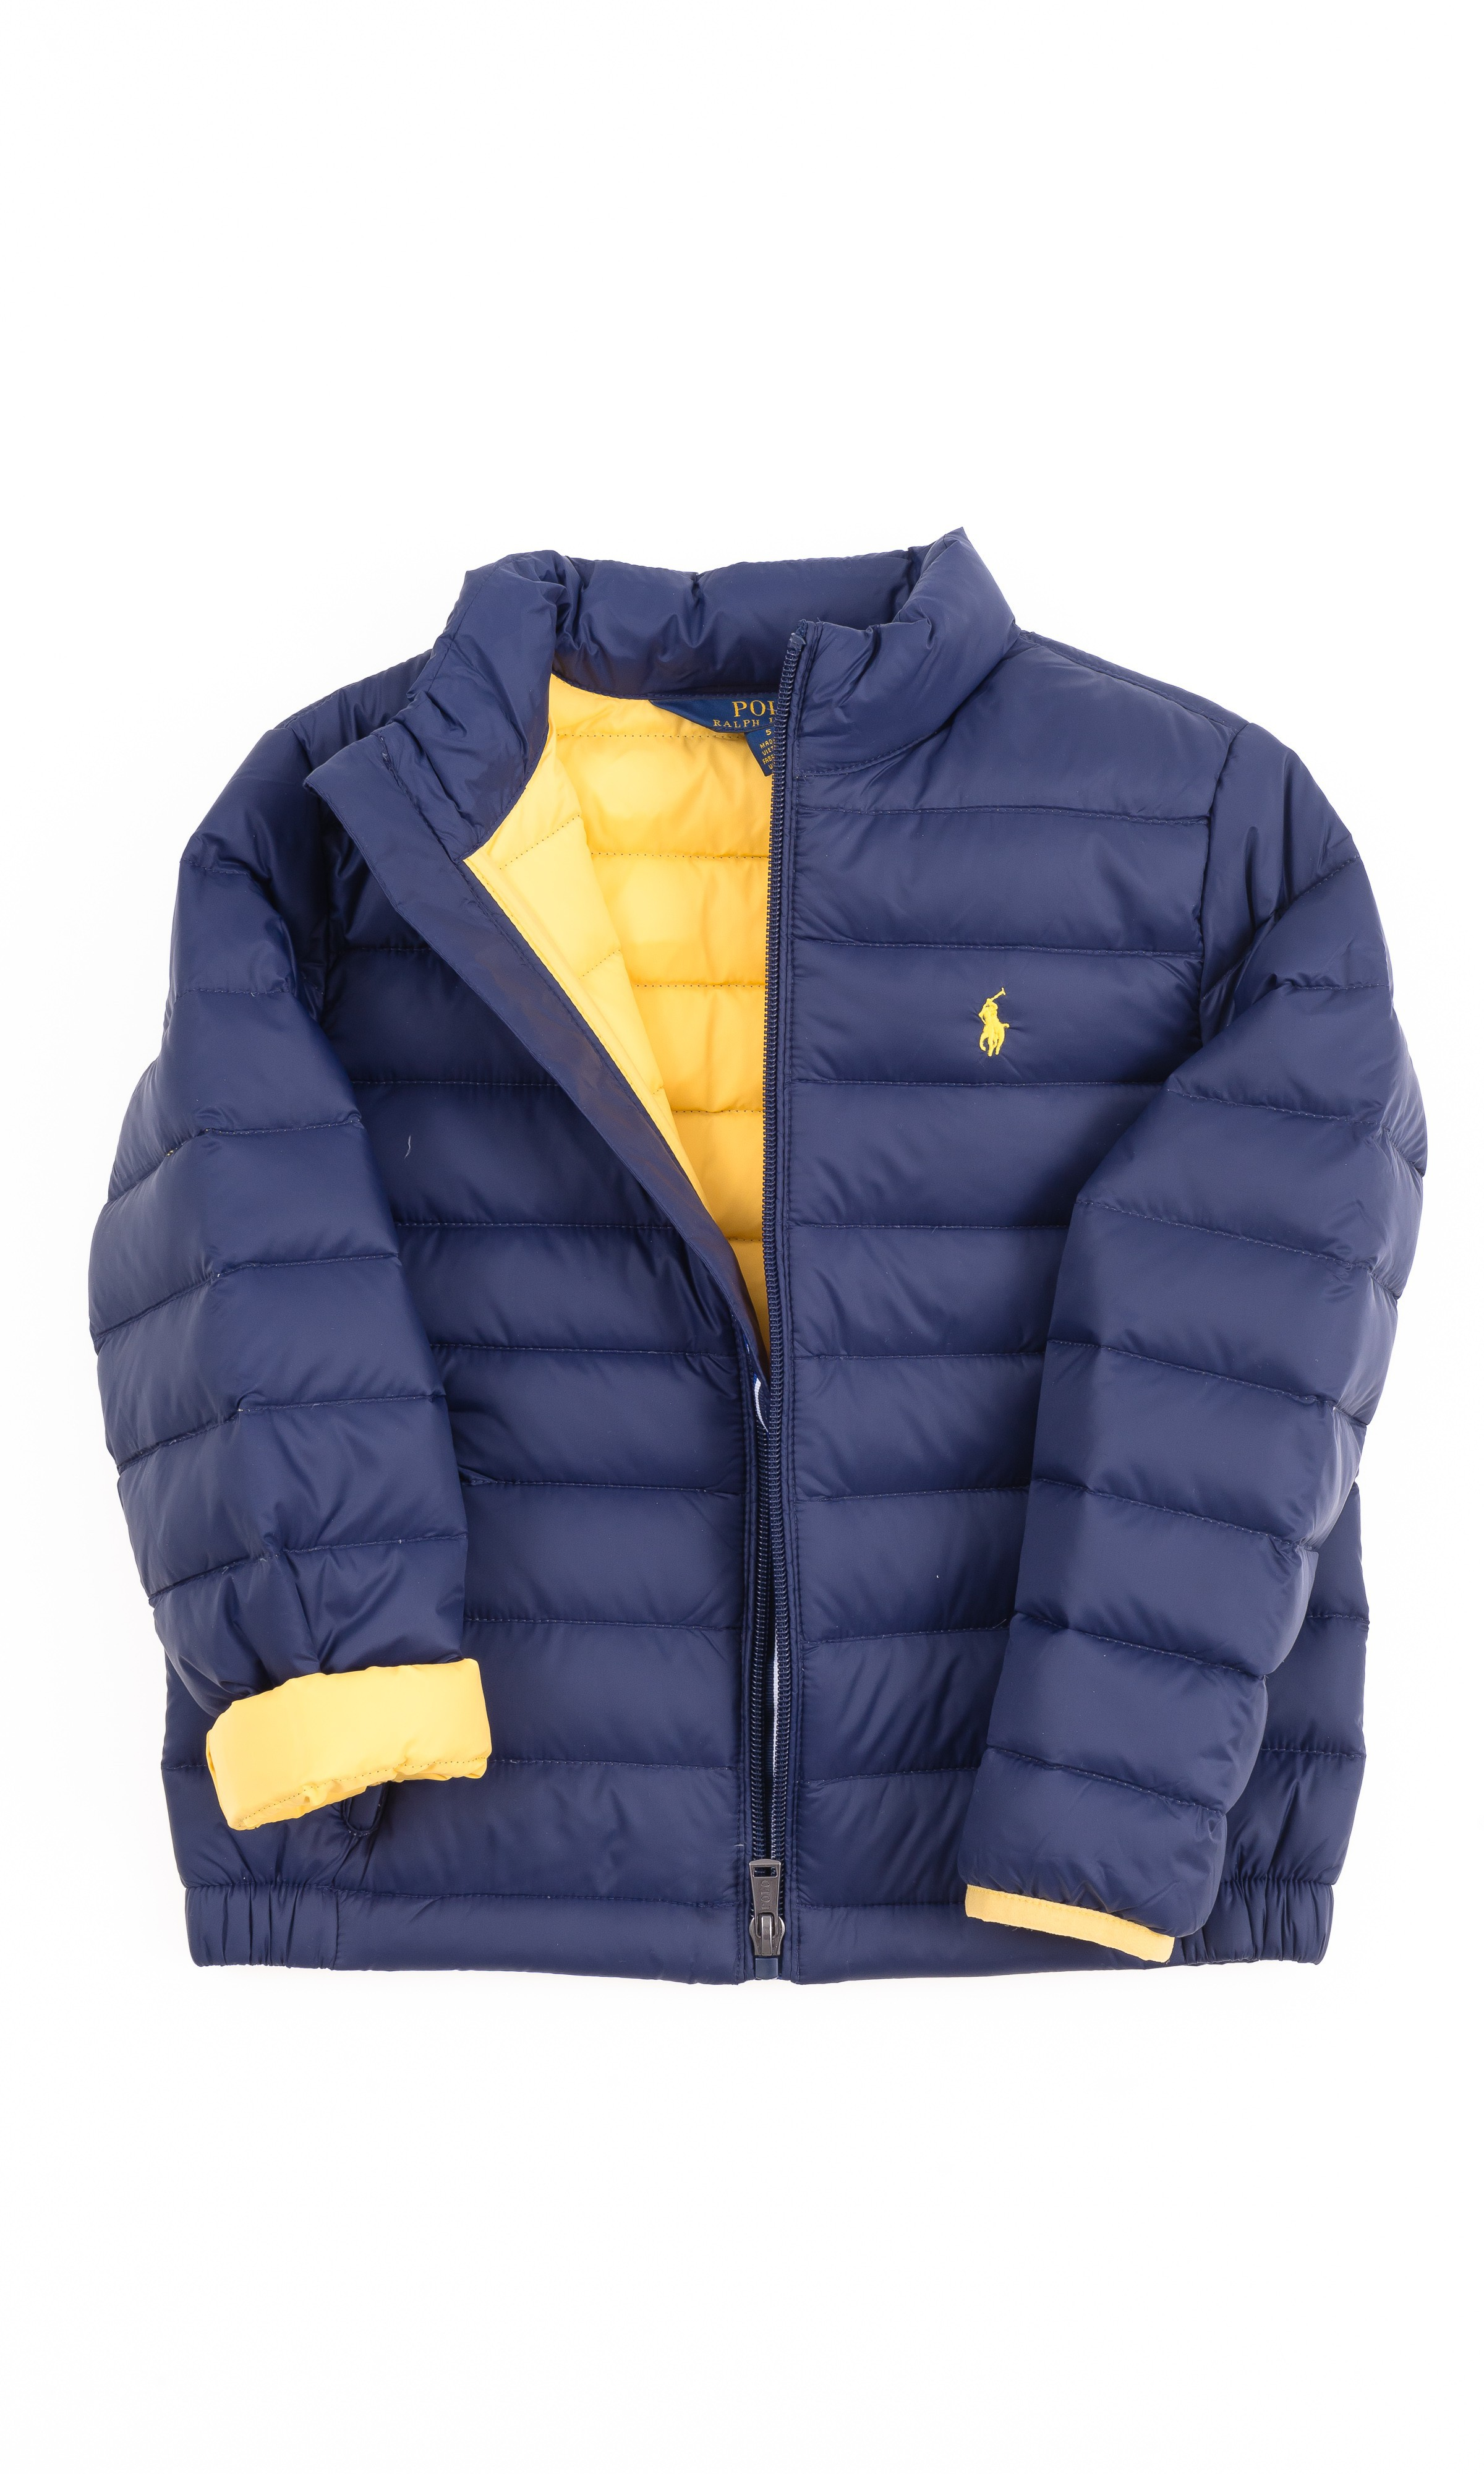 619f0cd4d Navy blue boys jacket, Polo Ralph Lauren - Celebrity-Club